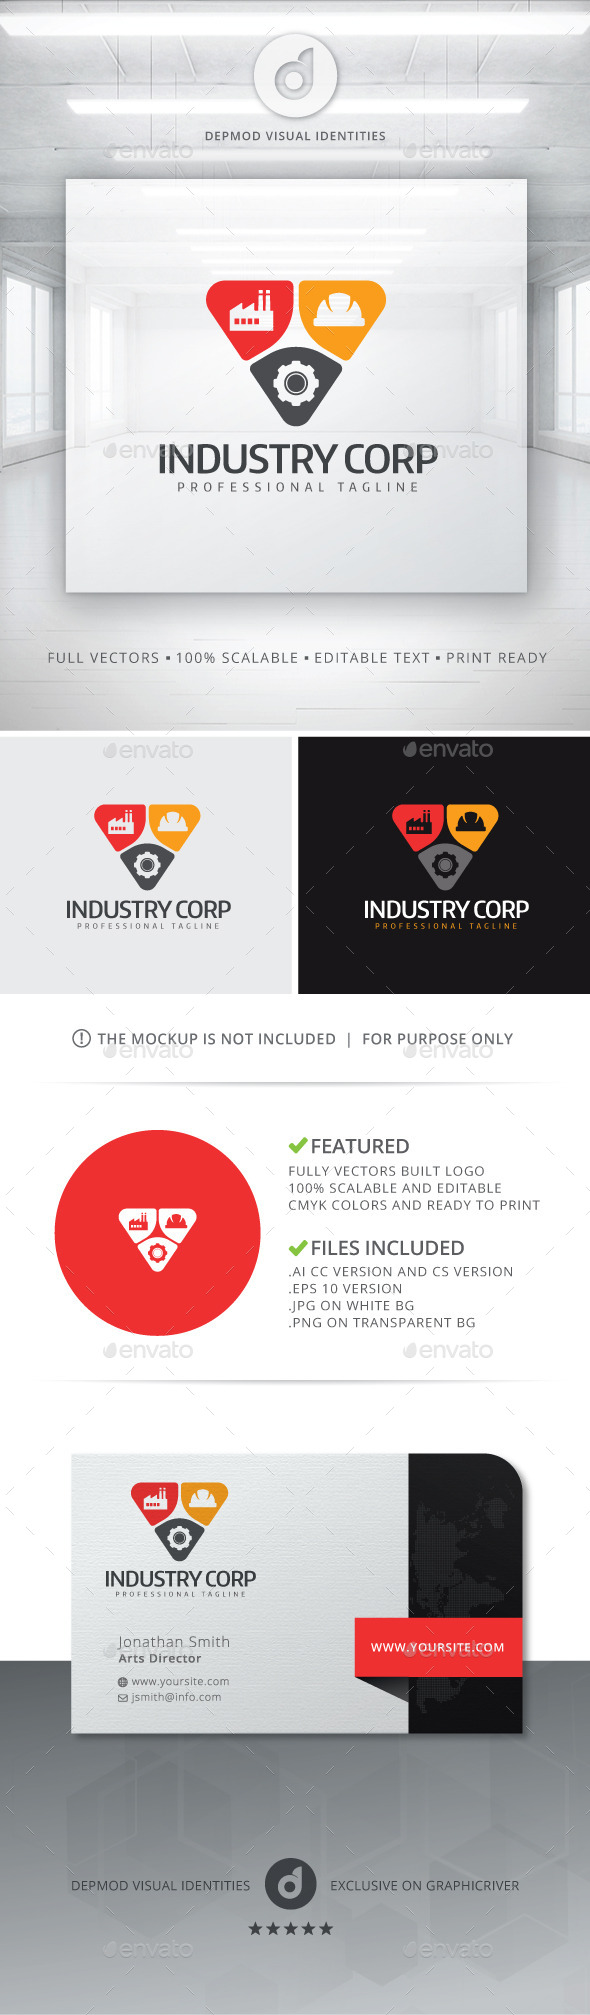 GraphicRiver Industry Corp Logo 10930769